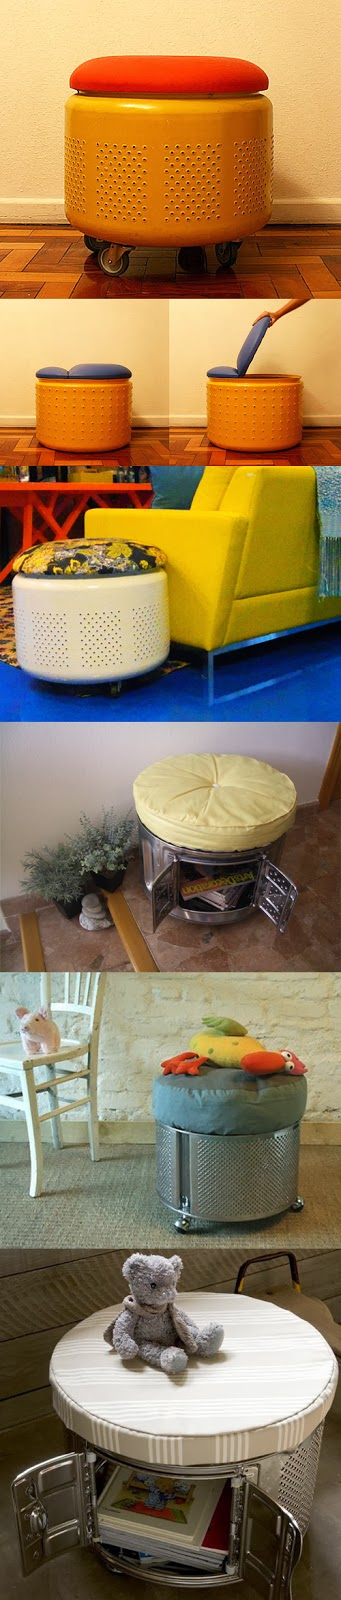 Some ways of recycling the drum of a washing machine